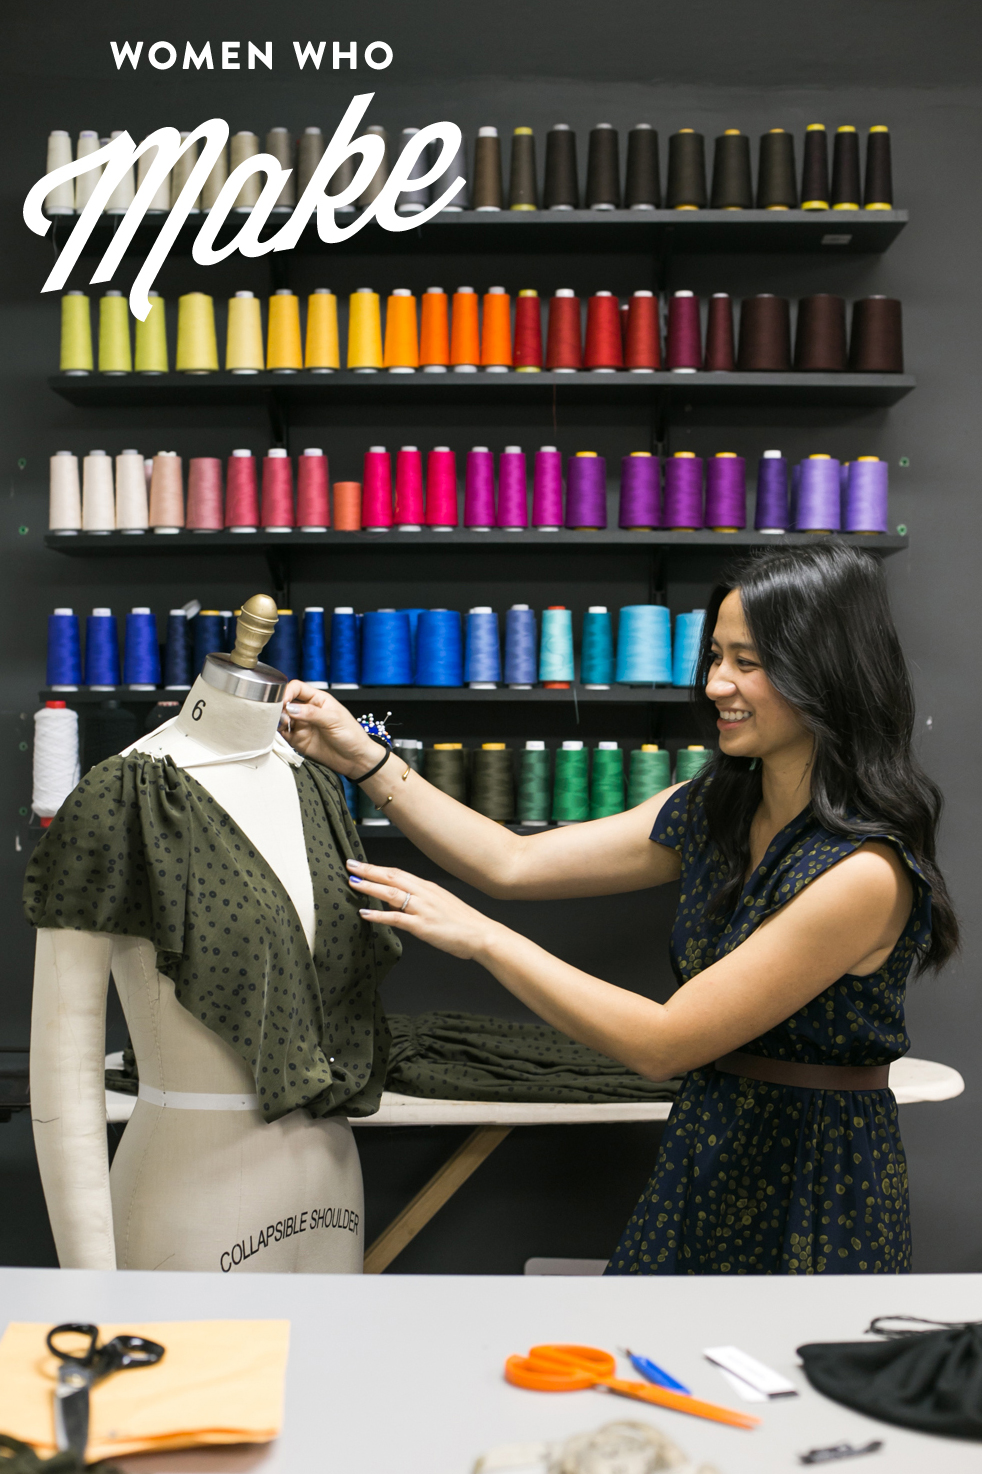 Sophia David - I am the owner and designer of a contemporary womenswear line, Sophia Reyes. The line is made in small batches in limited edition prints in Chicago.